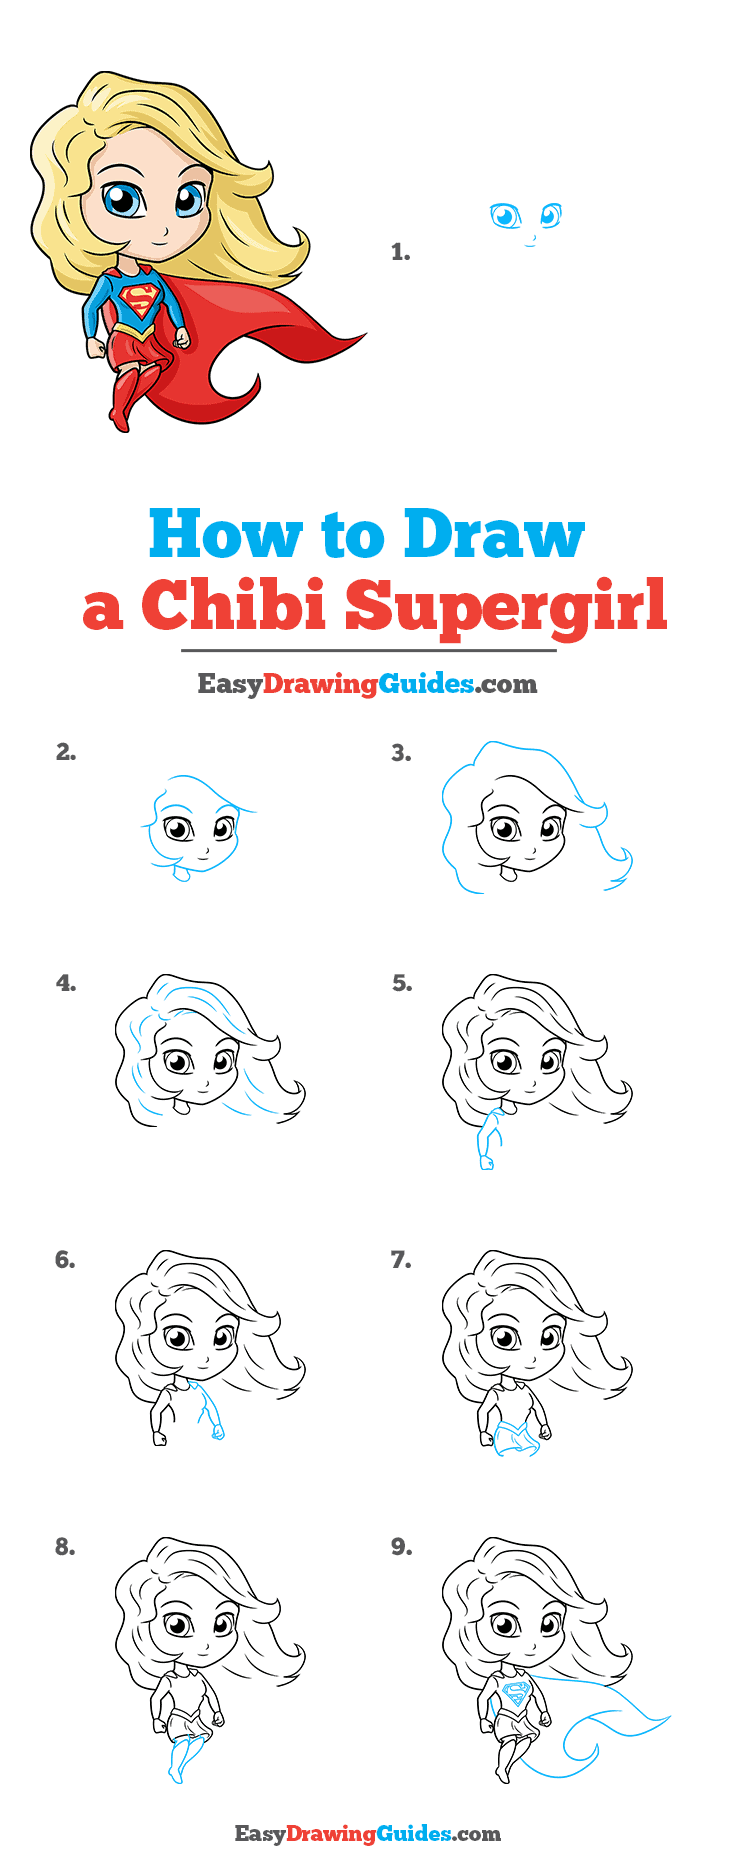 How to Draw Chibi Supergirl